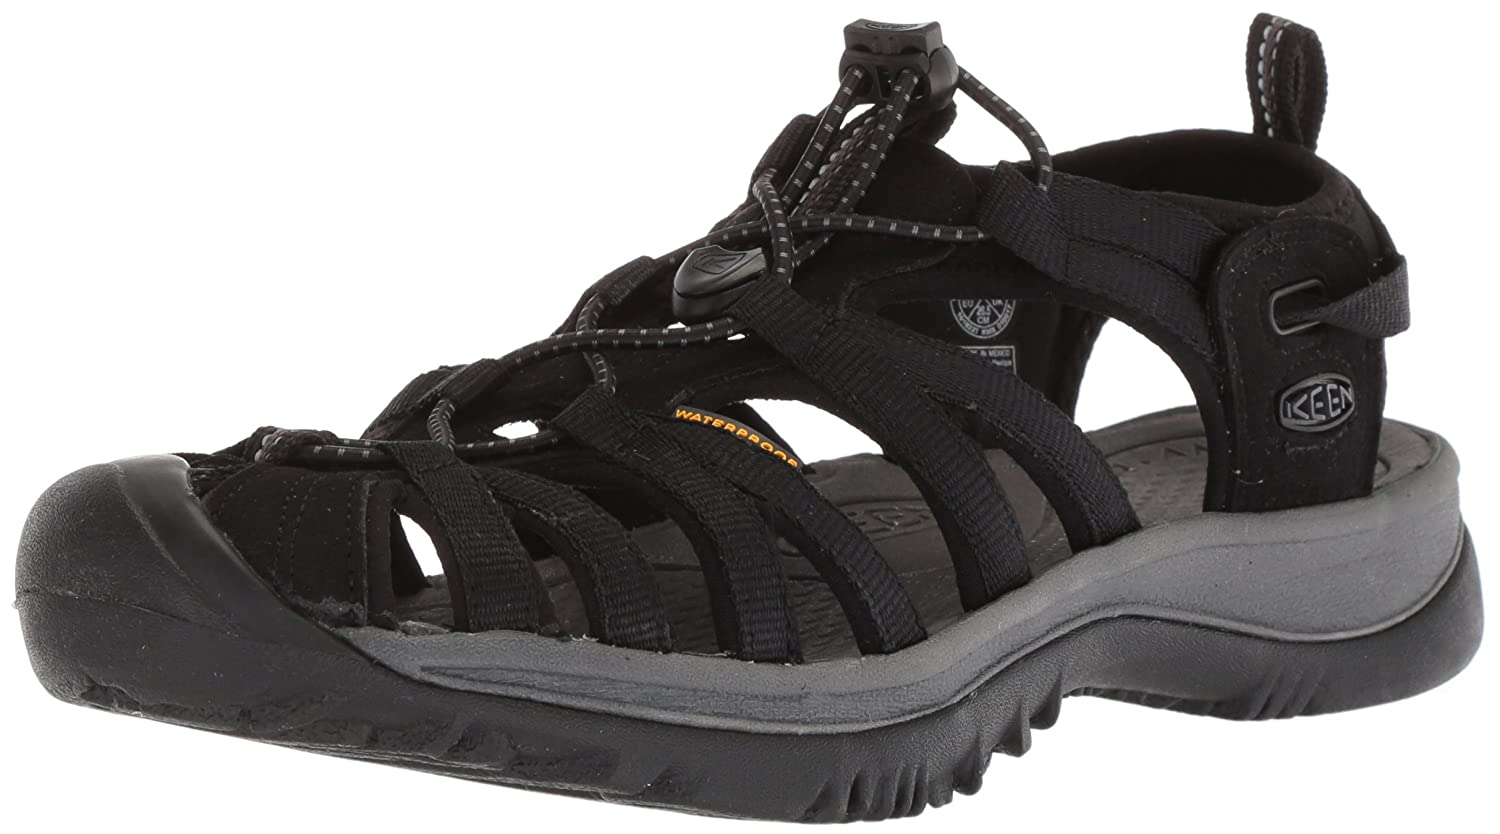 0d572958838 Amazon.com | KEEN Women's Whisper Sandal | Sport Sandals & Slides